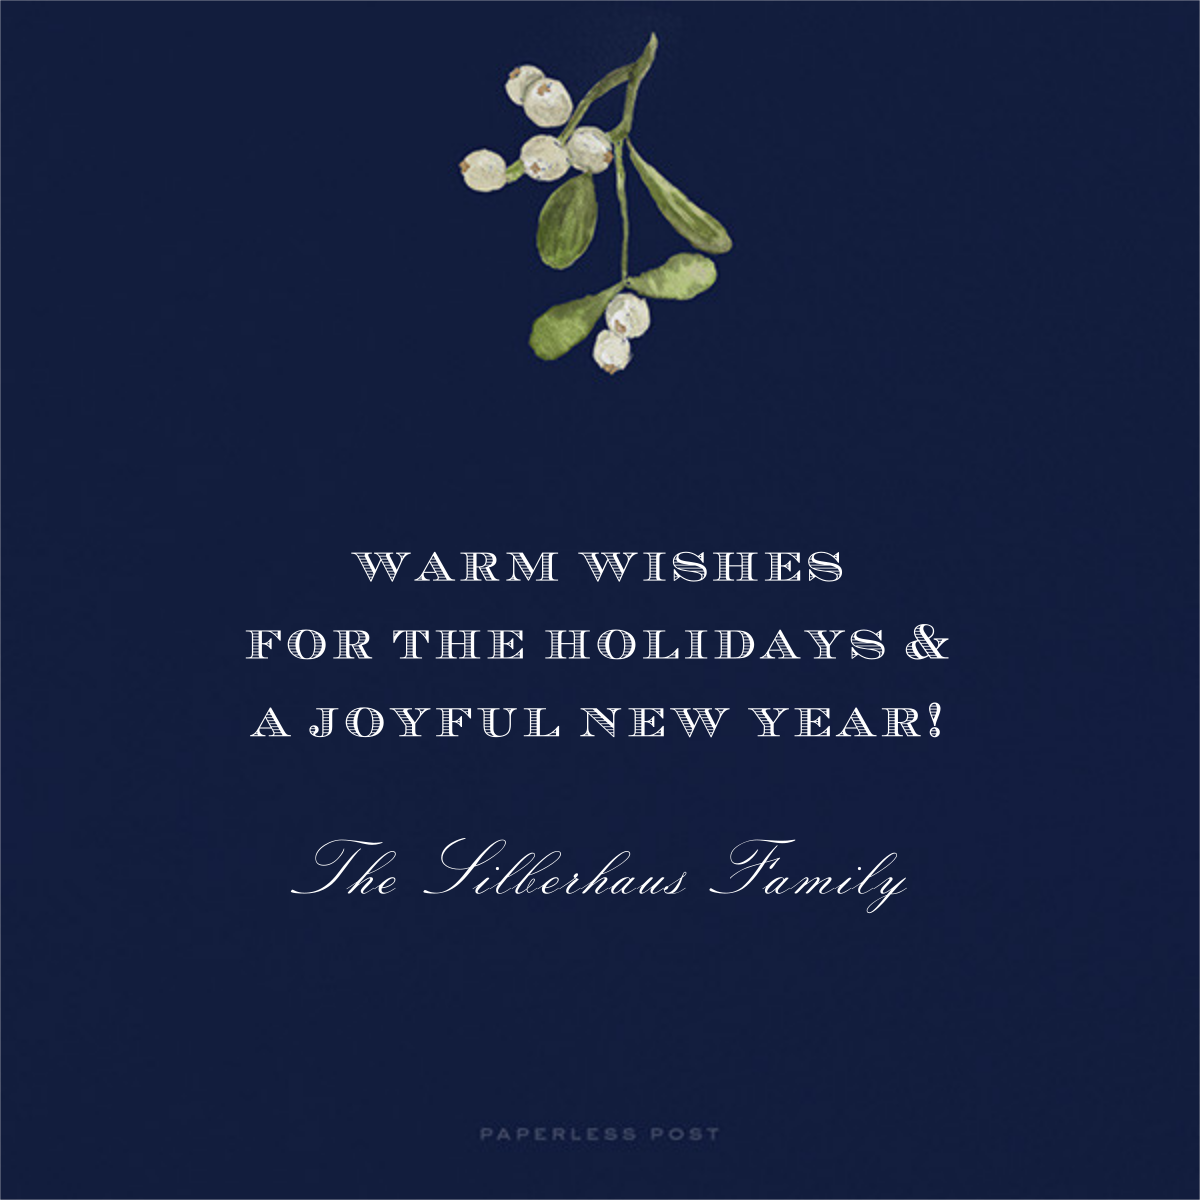 Holiday Foliage Border - Square - Paperless Post - Holiday cards - card back